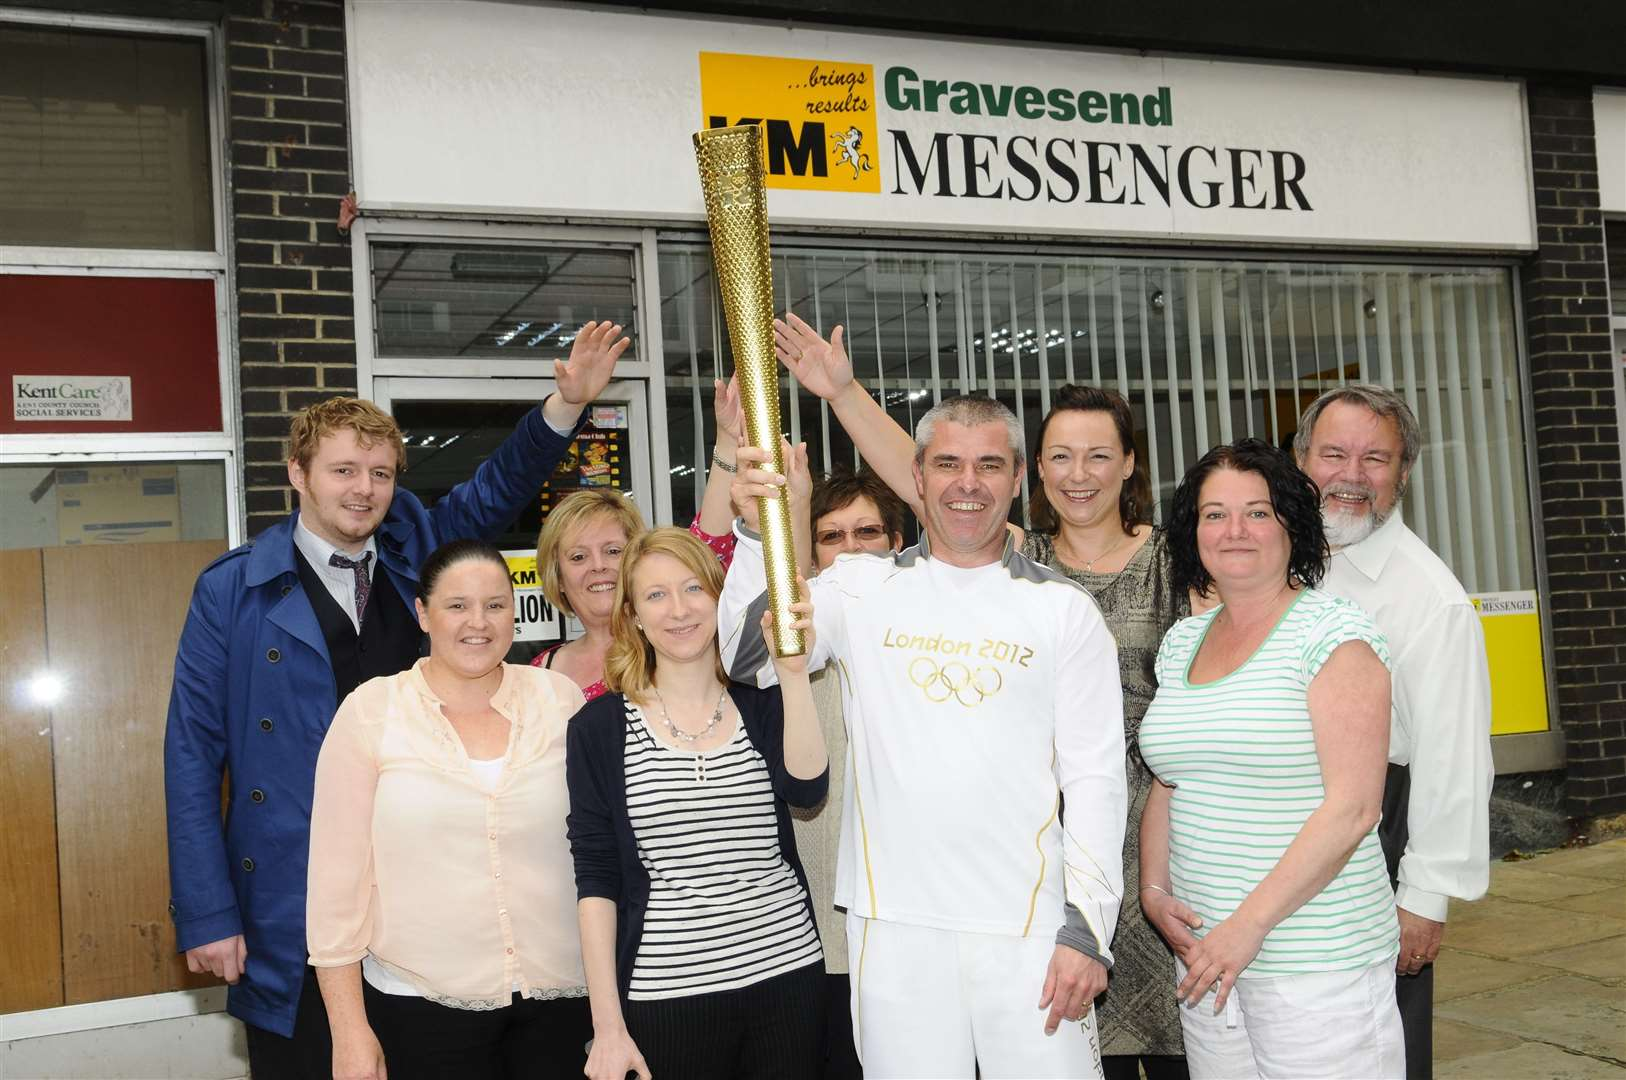 Paul Cloke, who carried the Olympic torch in Sheffield, with the KM's Gravesend Messenger team